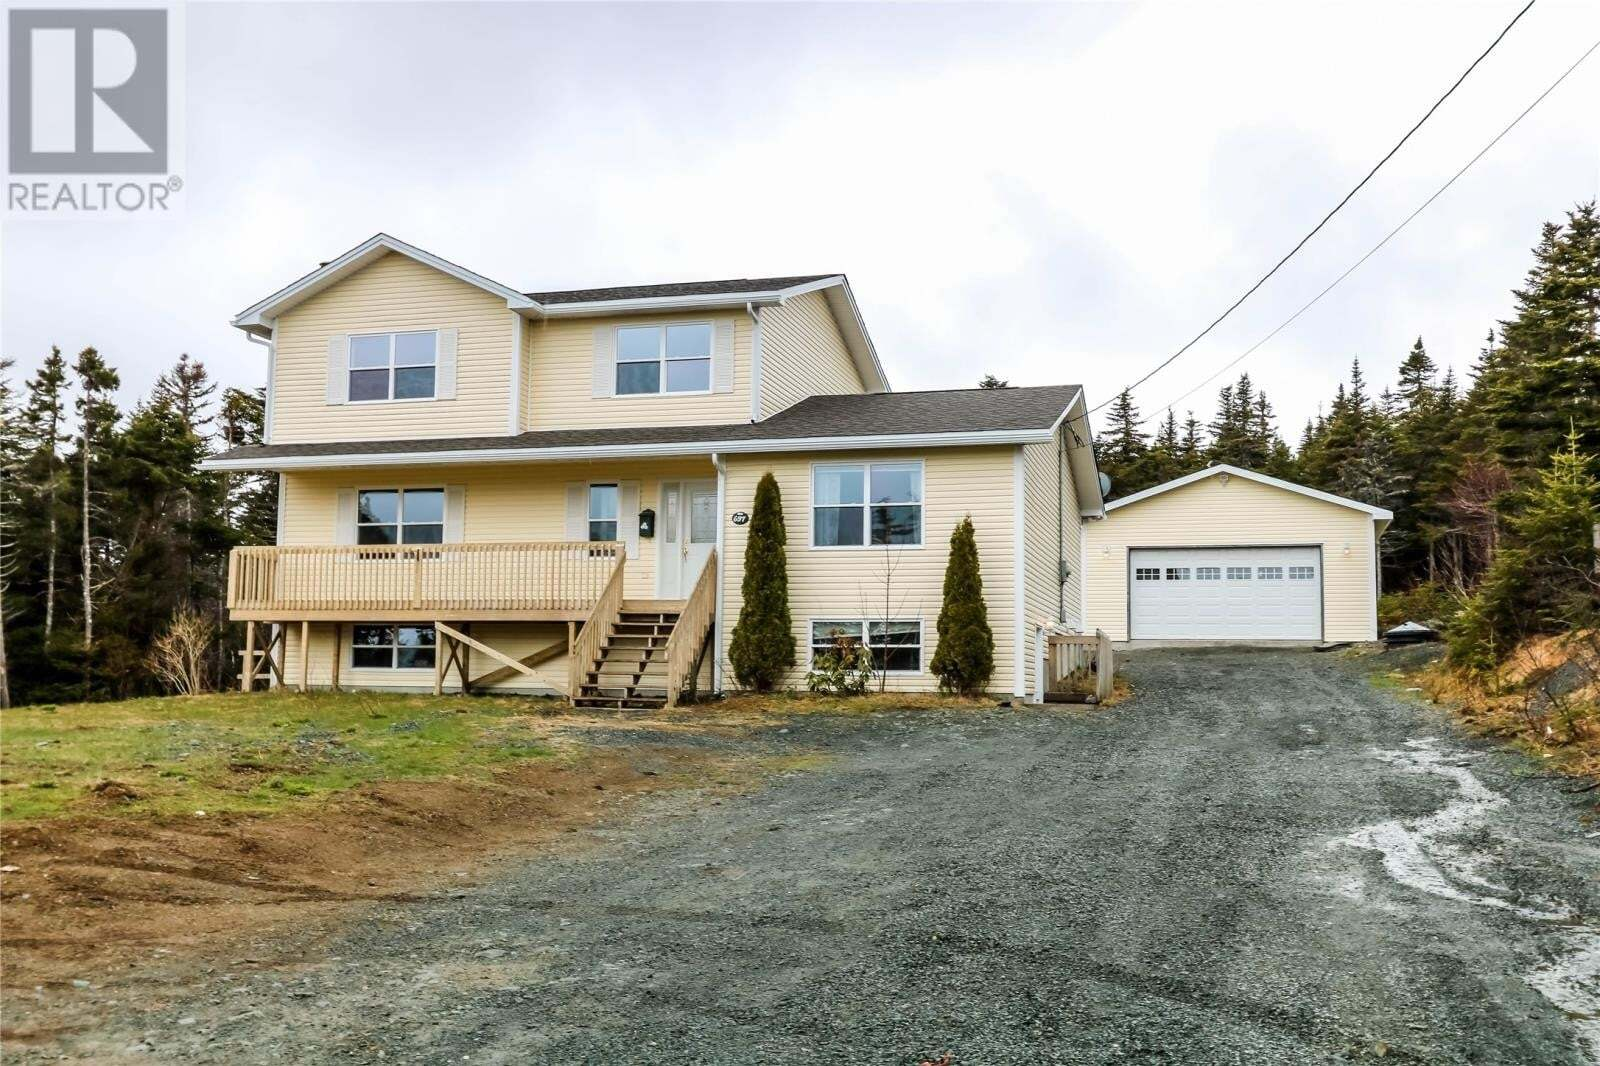 House for sale at 697 Bauline Line Extension Portugal Cove-st Philips Newfoundland - MLS: 1213850